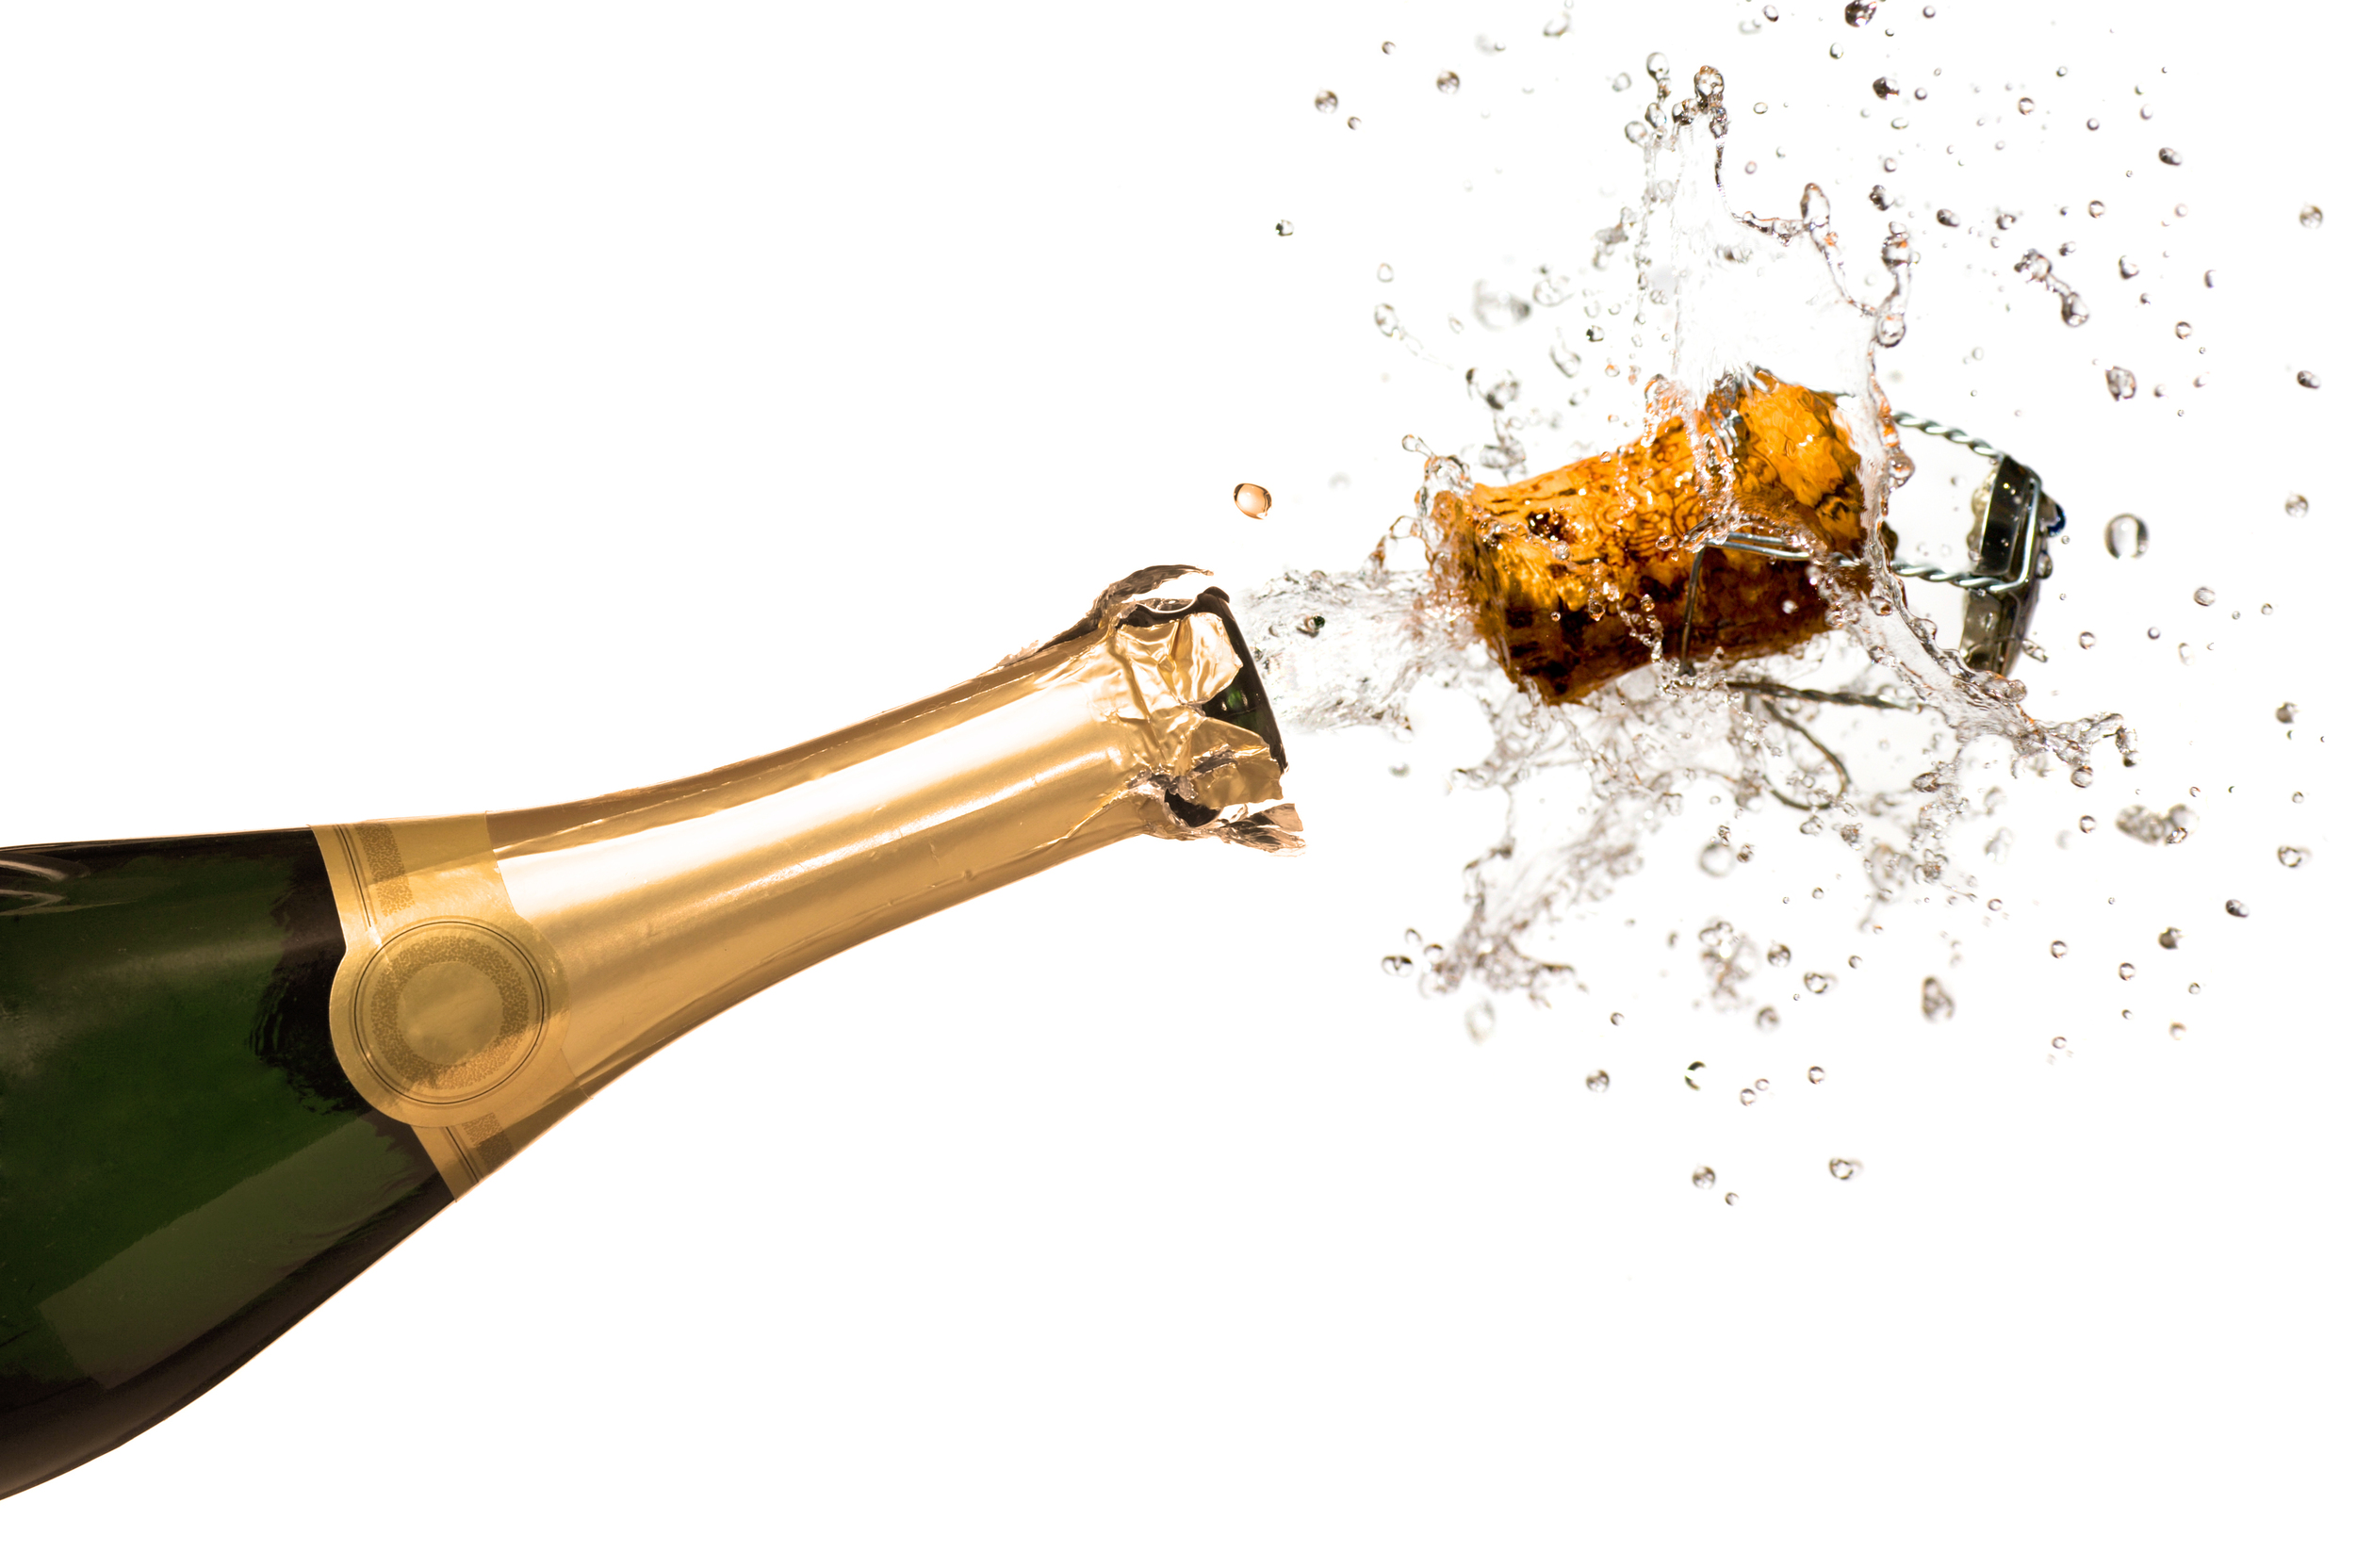 Close-up-of-explosion-of-champagne-bottle-cork2.jpg